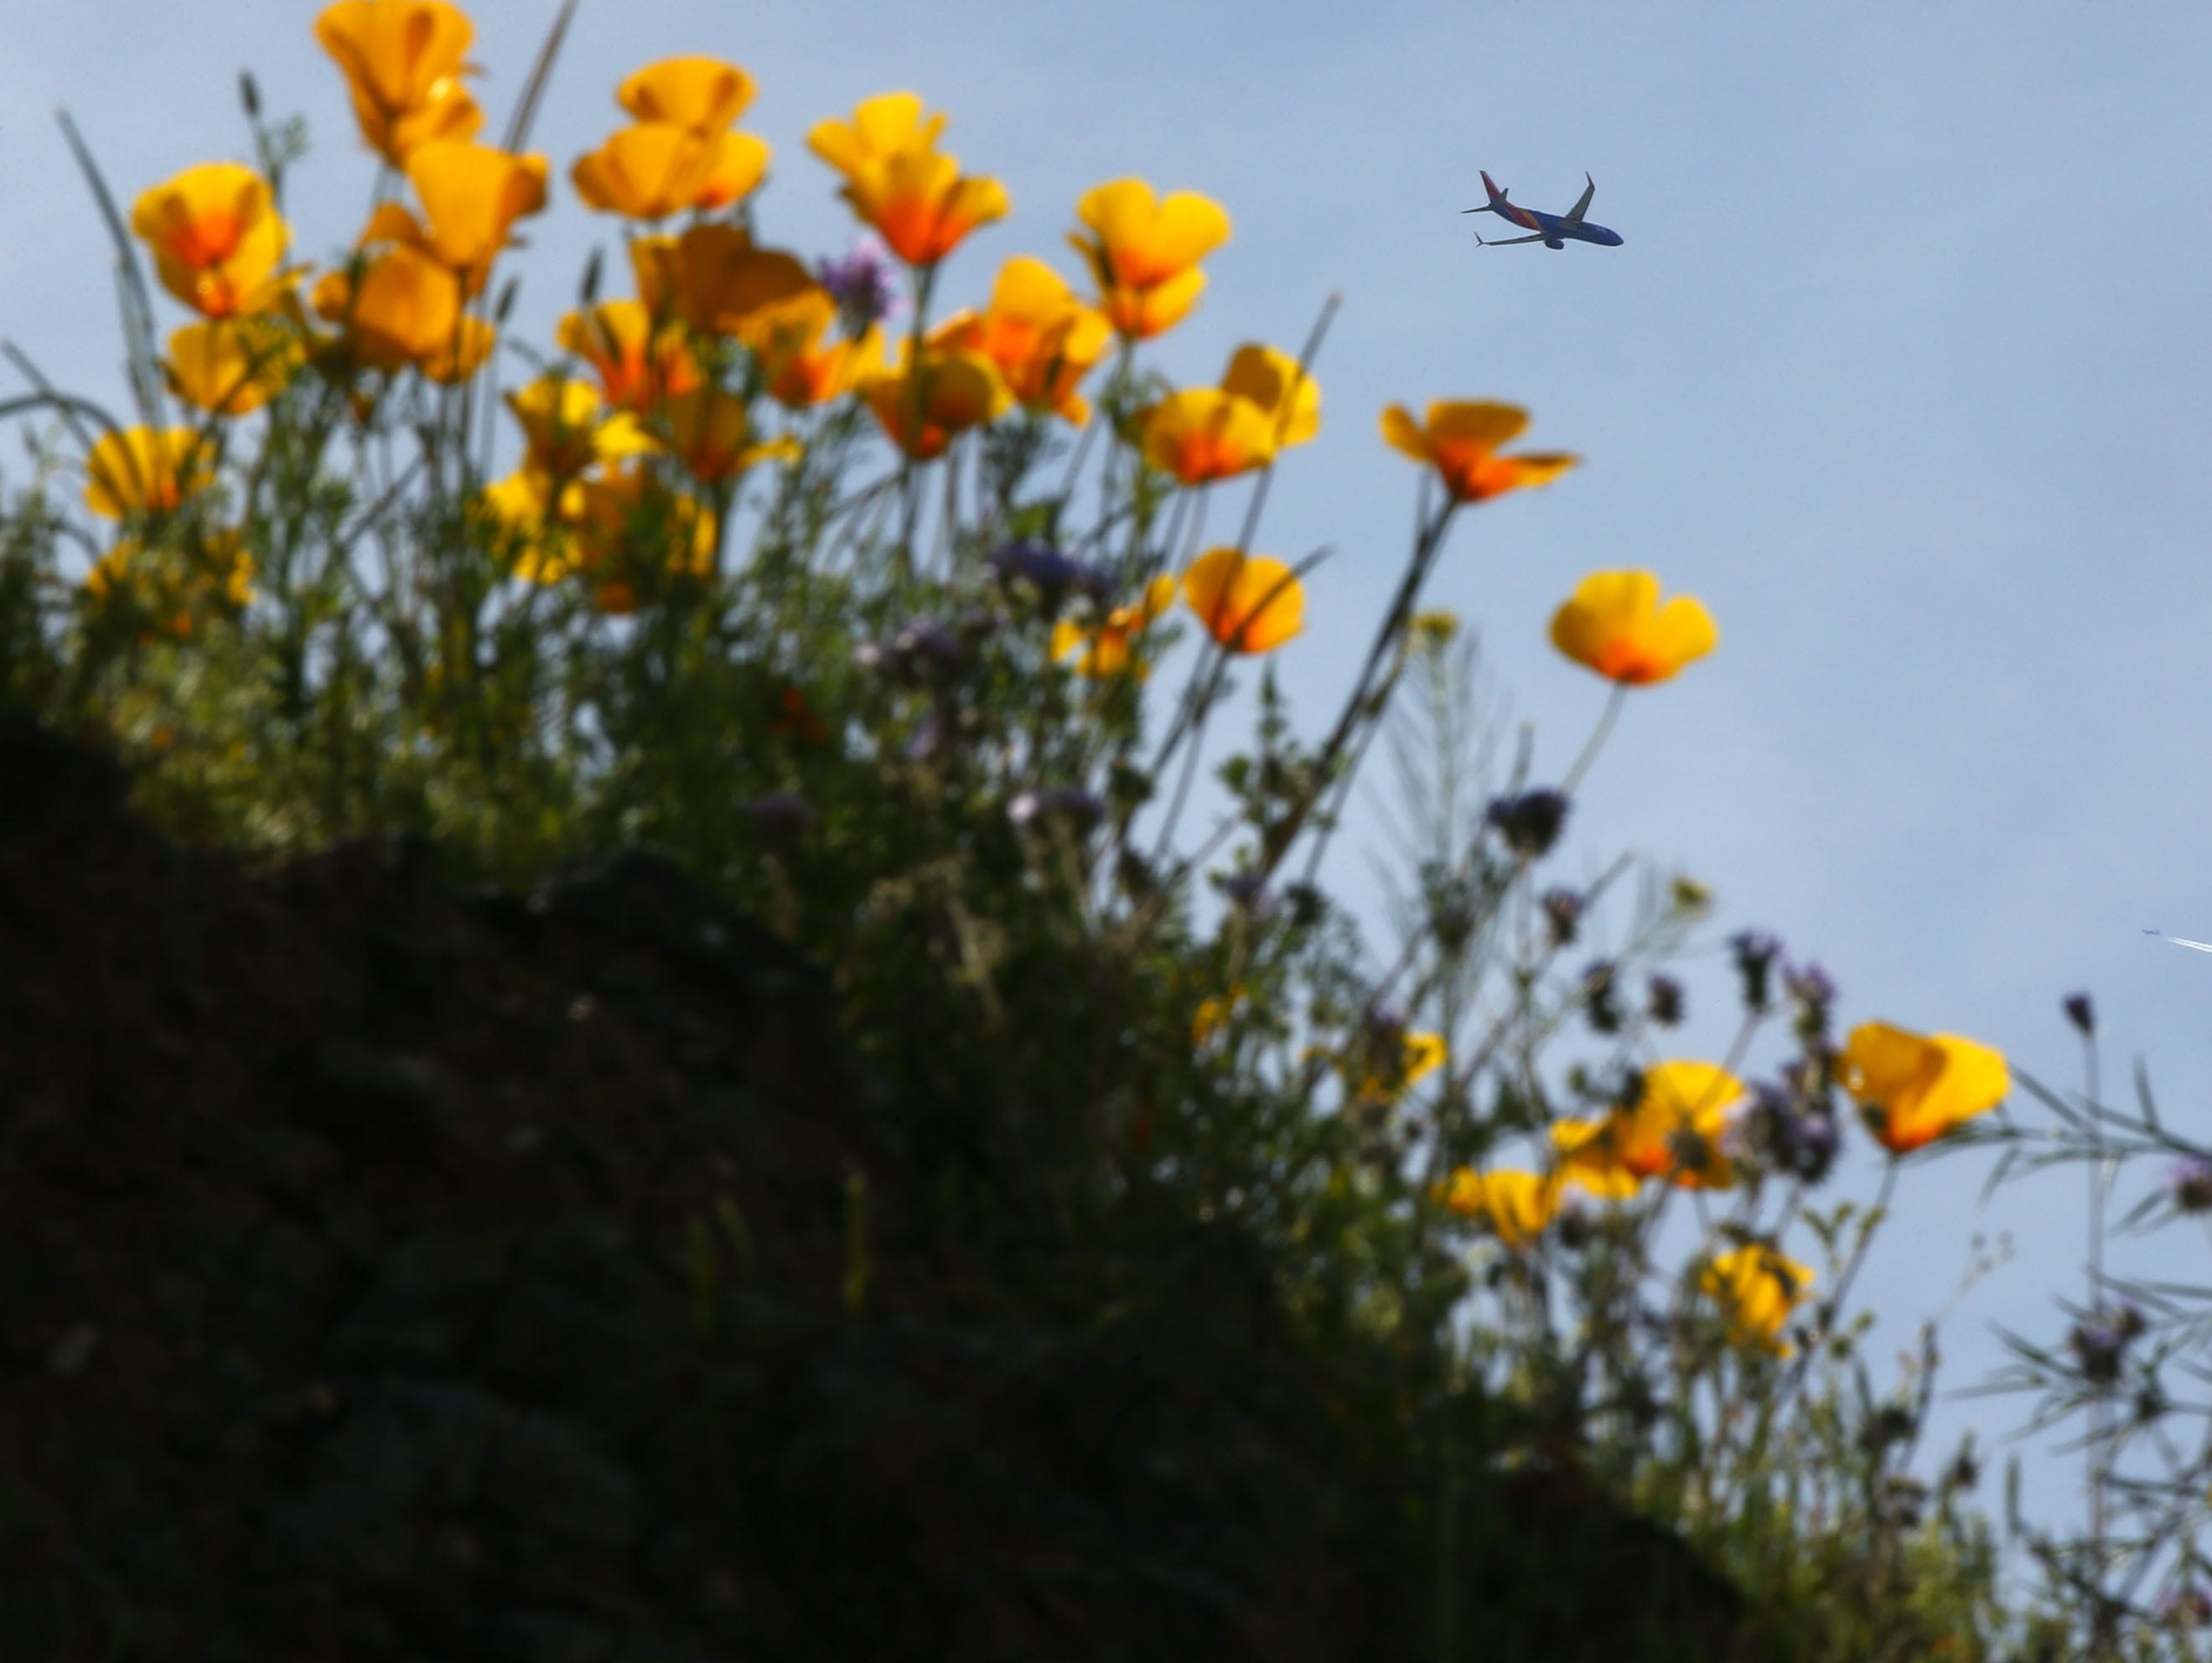 A Southwest jet flies to Sky Harbor International Airport as Mexican poppies bloom in South Mountain Park on March 6, 2019, in Phoenix.